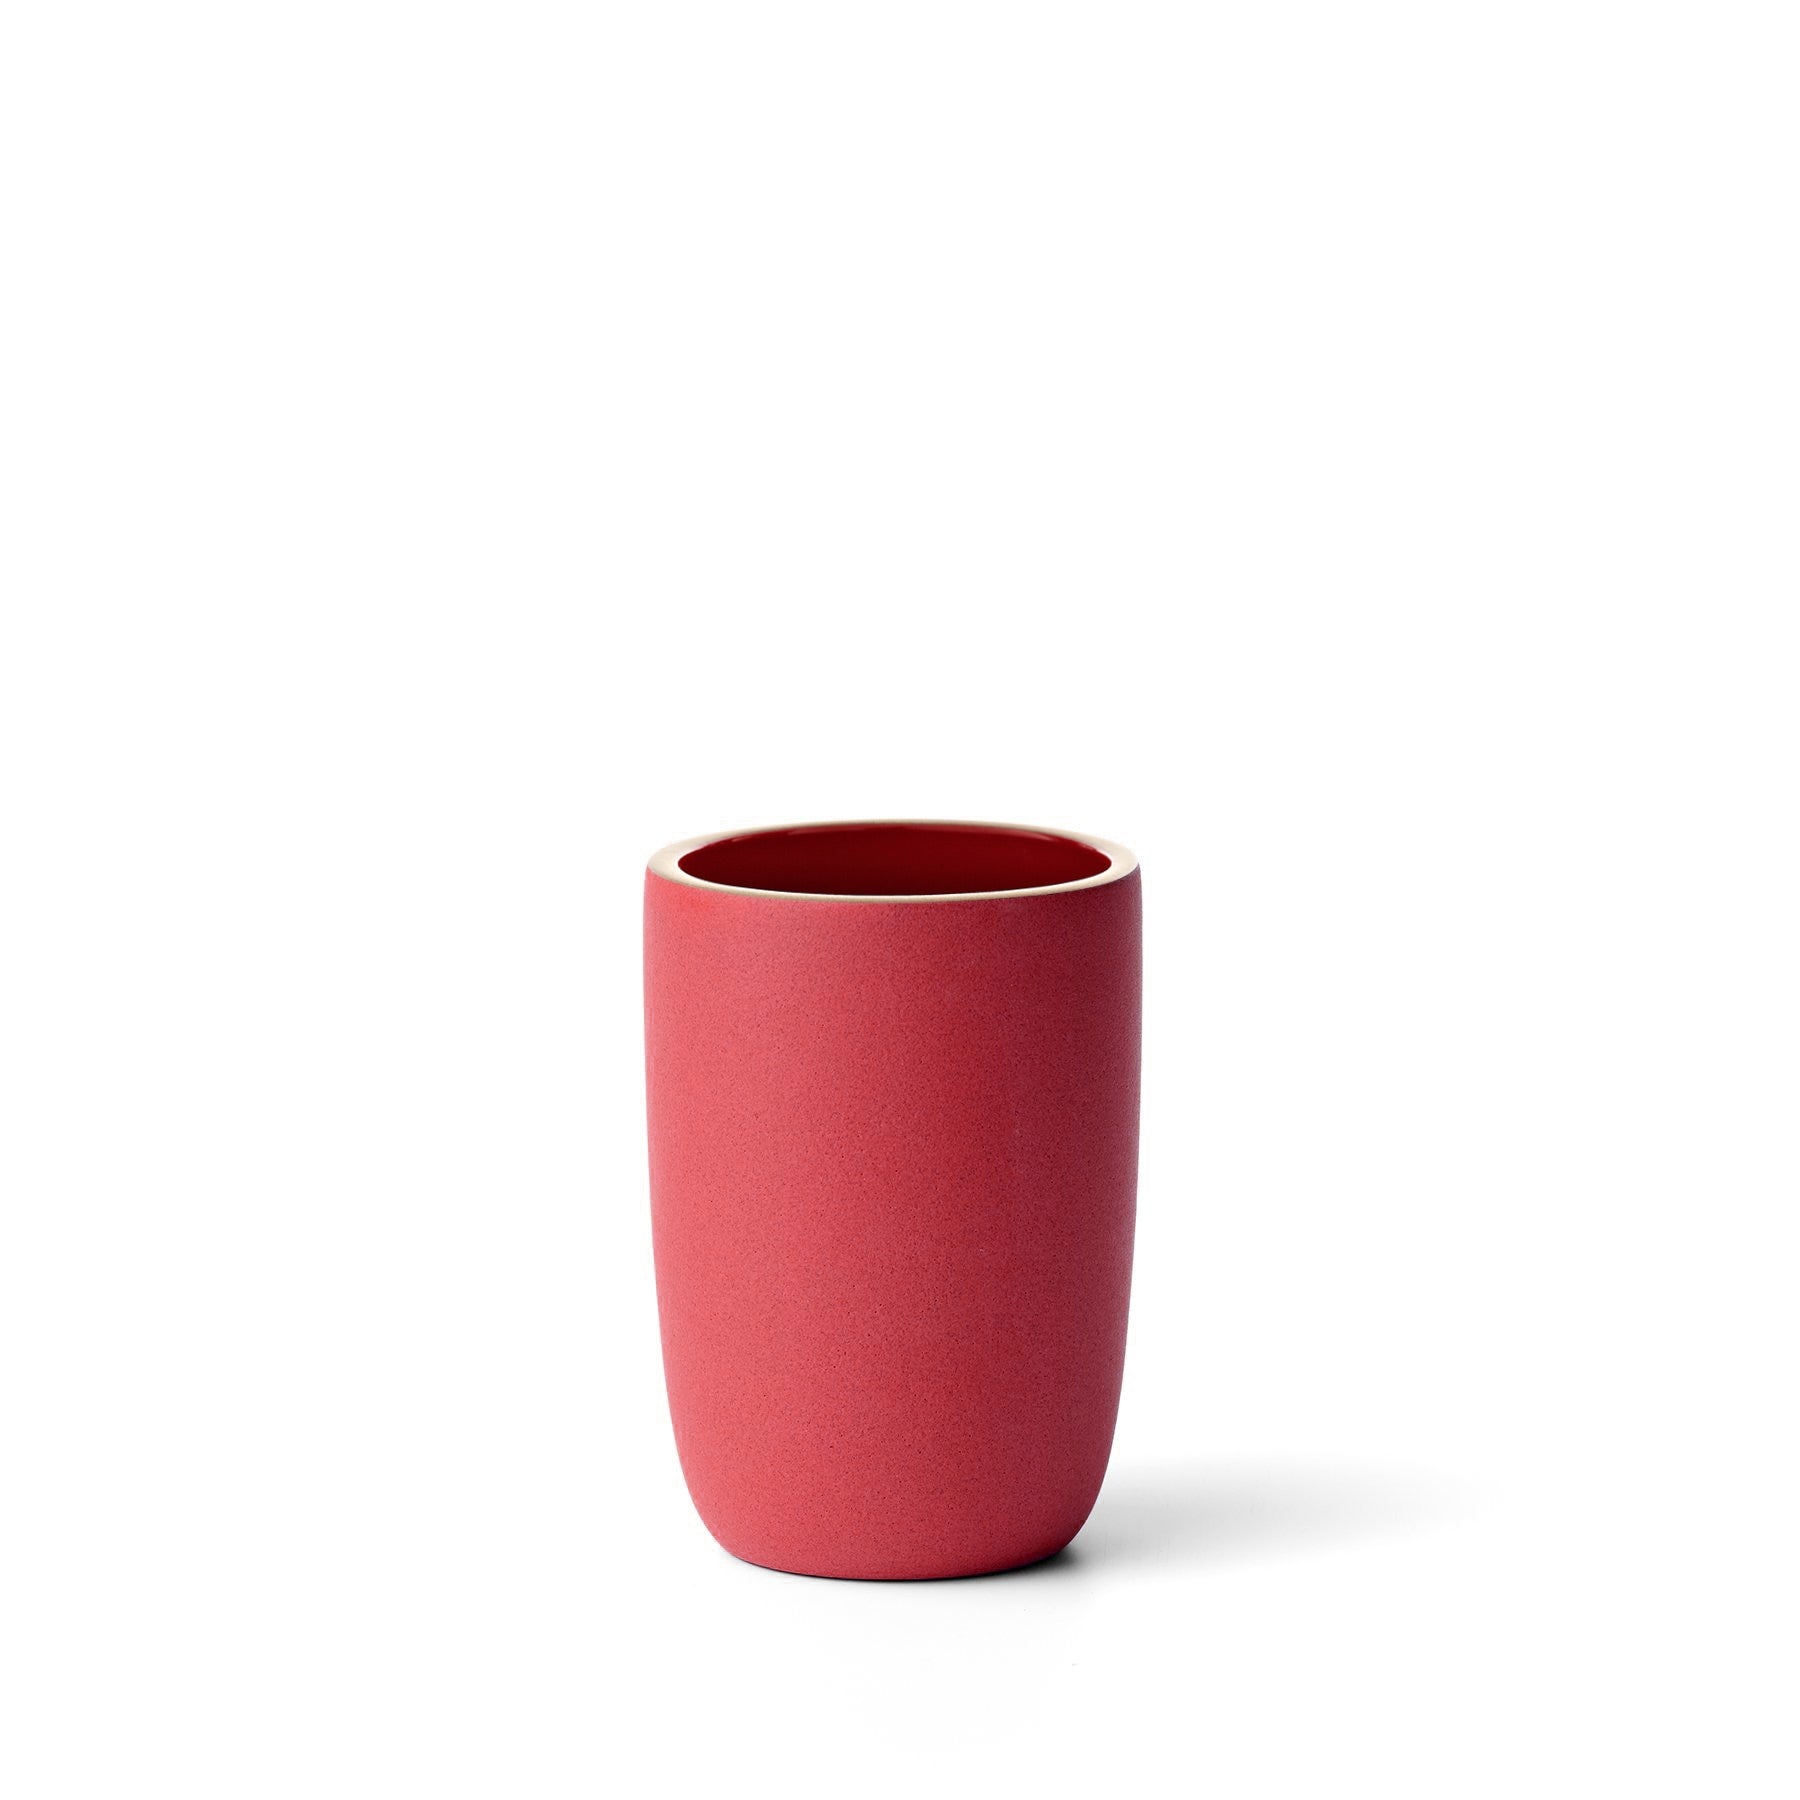 Tall Modern Cup in Ruby Red/Suede Red Zoom Image 1